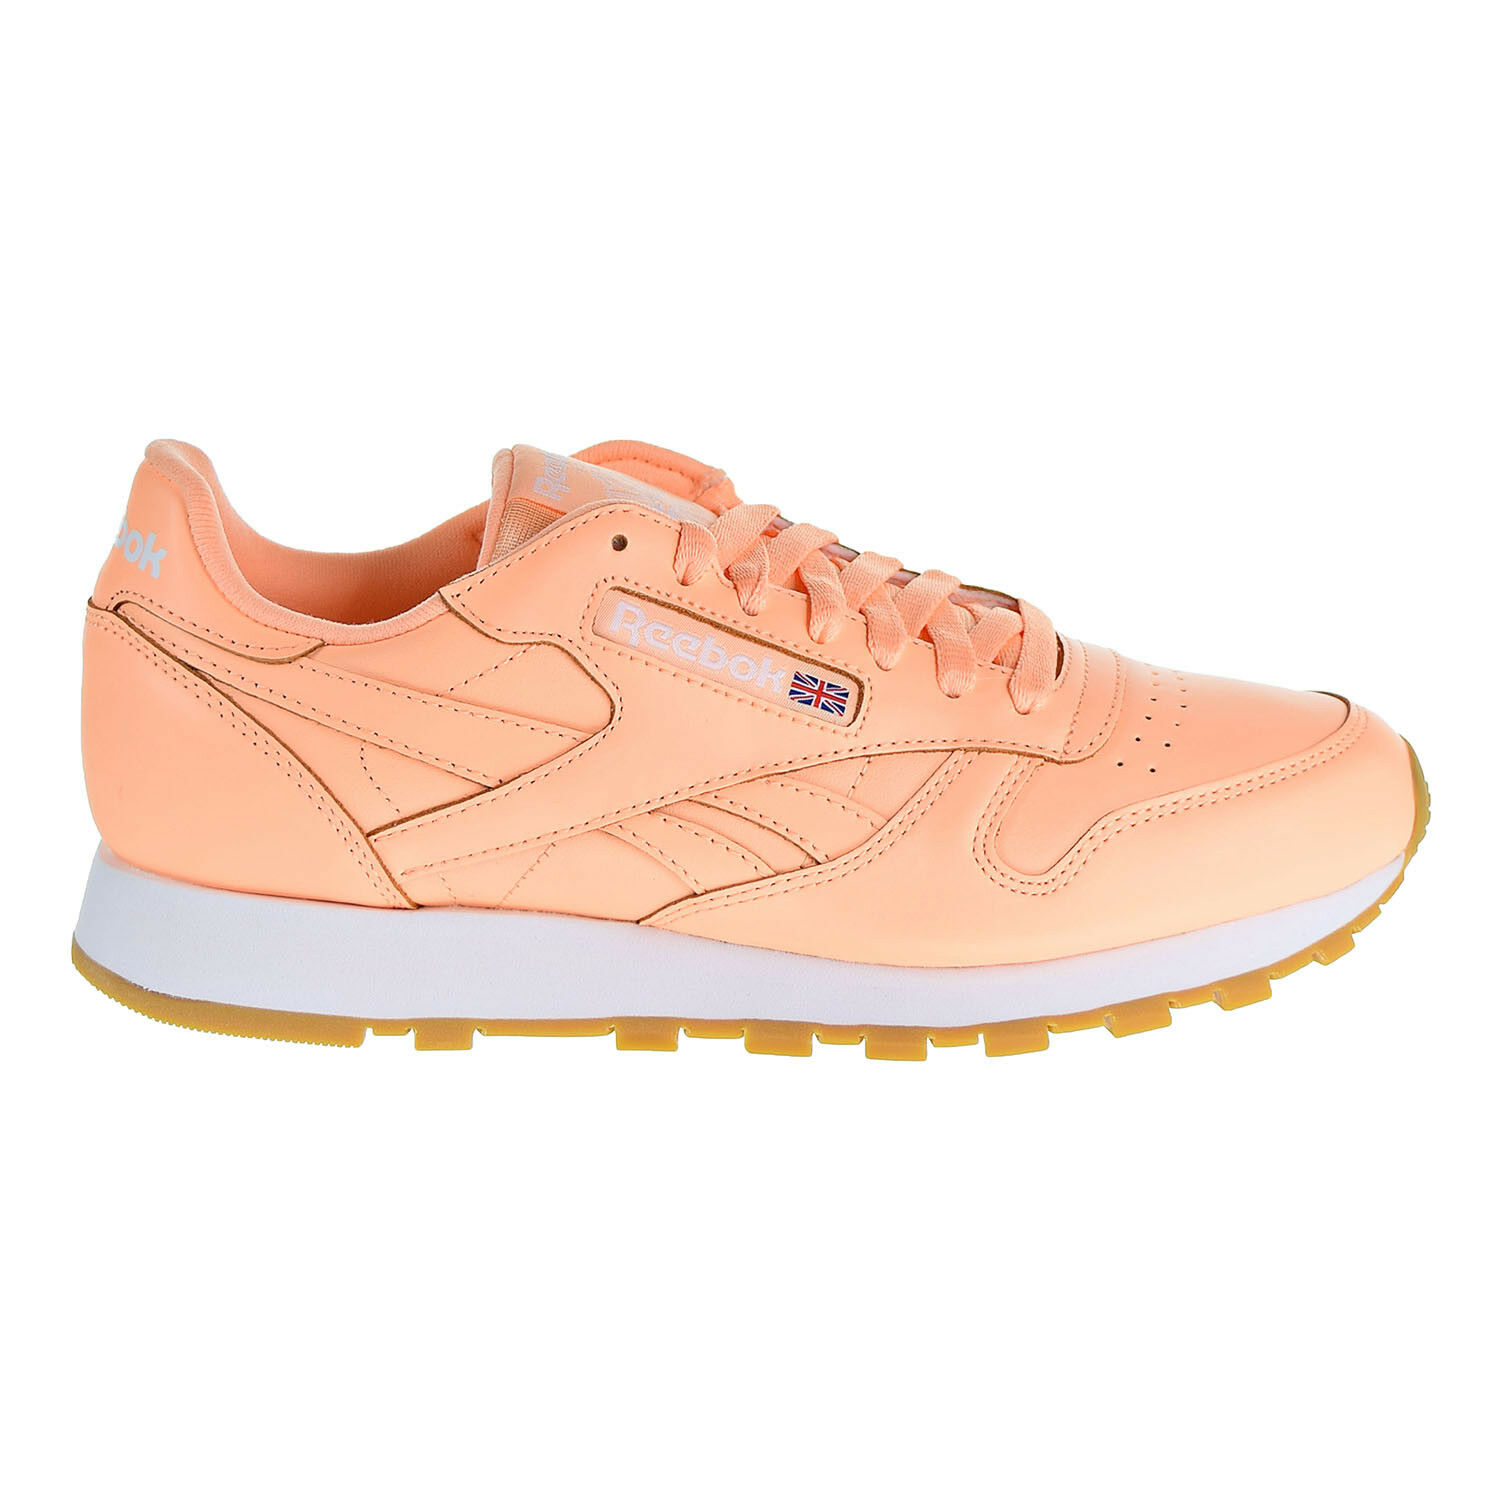 Reebok Classic Leather Gum Men's shoes Desert Glow White Gum CN3994